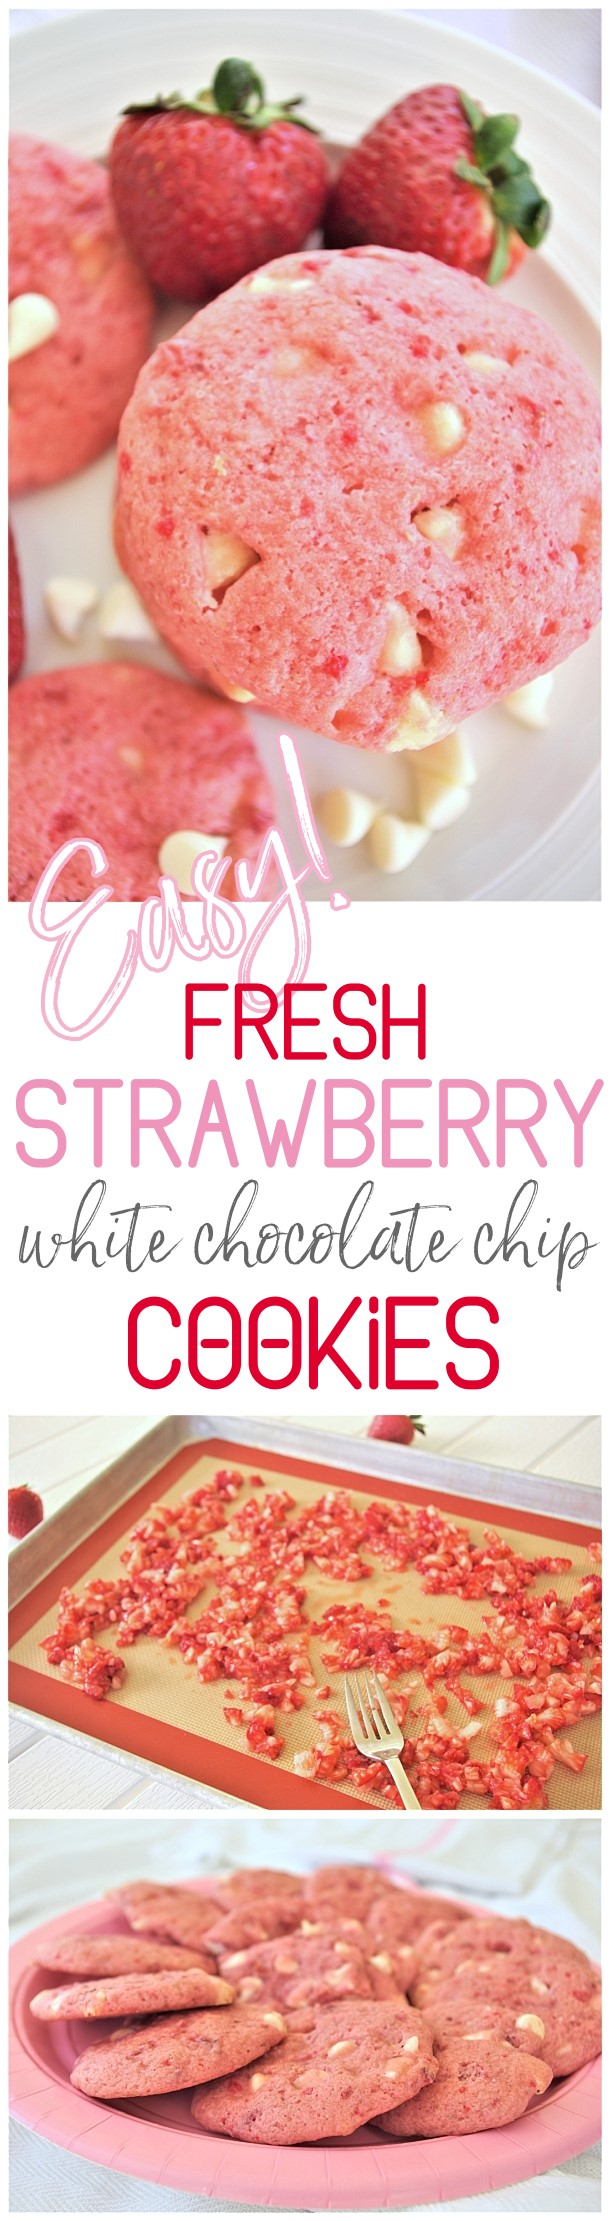 Valentine's Day Easy Fresh Strawberry White Chocolate Chip Cookies Quick, Simple and SO yummy! via Dreaming in DIY #valentinesdaycookies #valentinesdaytreats #valentinesdaydesserts #strawberrycookies #strawberrywhitechocolatechip #cookies #strawberry #pinkcookies Easy Valentine's Day Dessert Recipes - Pink and Red Party Treats #valentinesdaydesserts #easyvalentinesdaydesserts